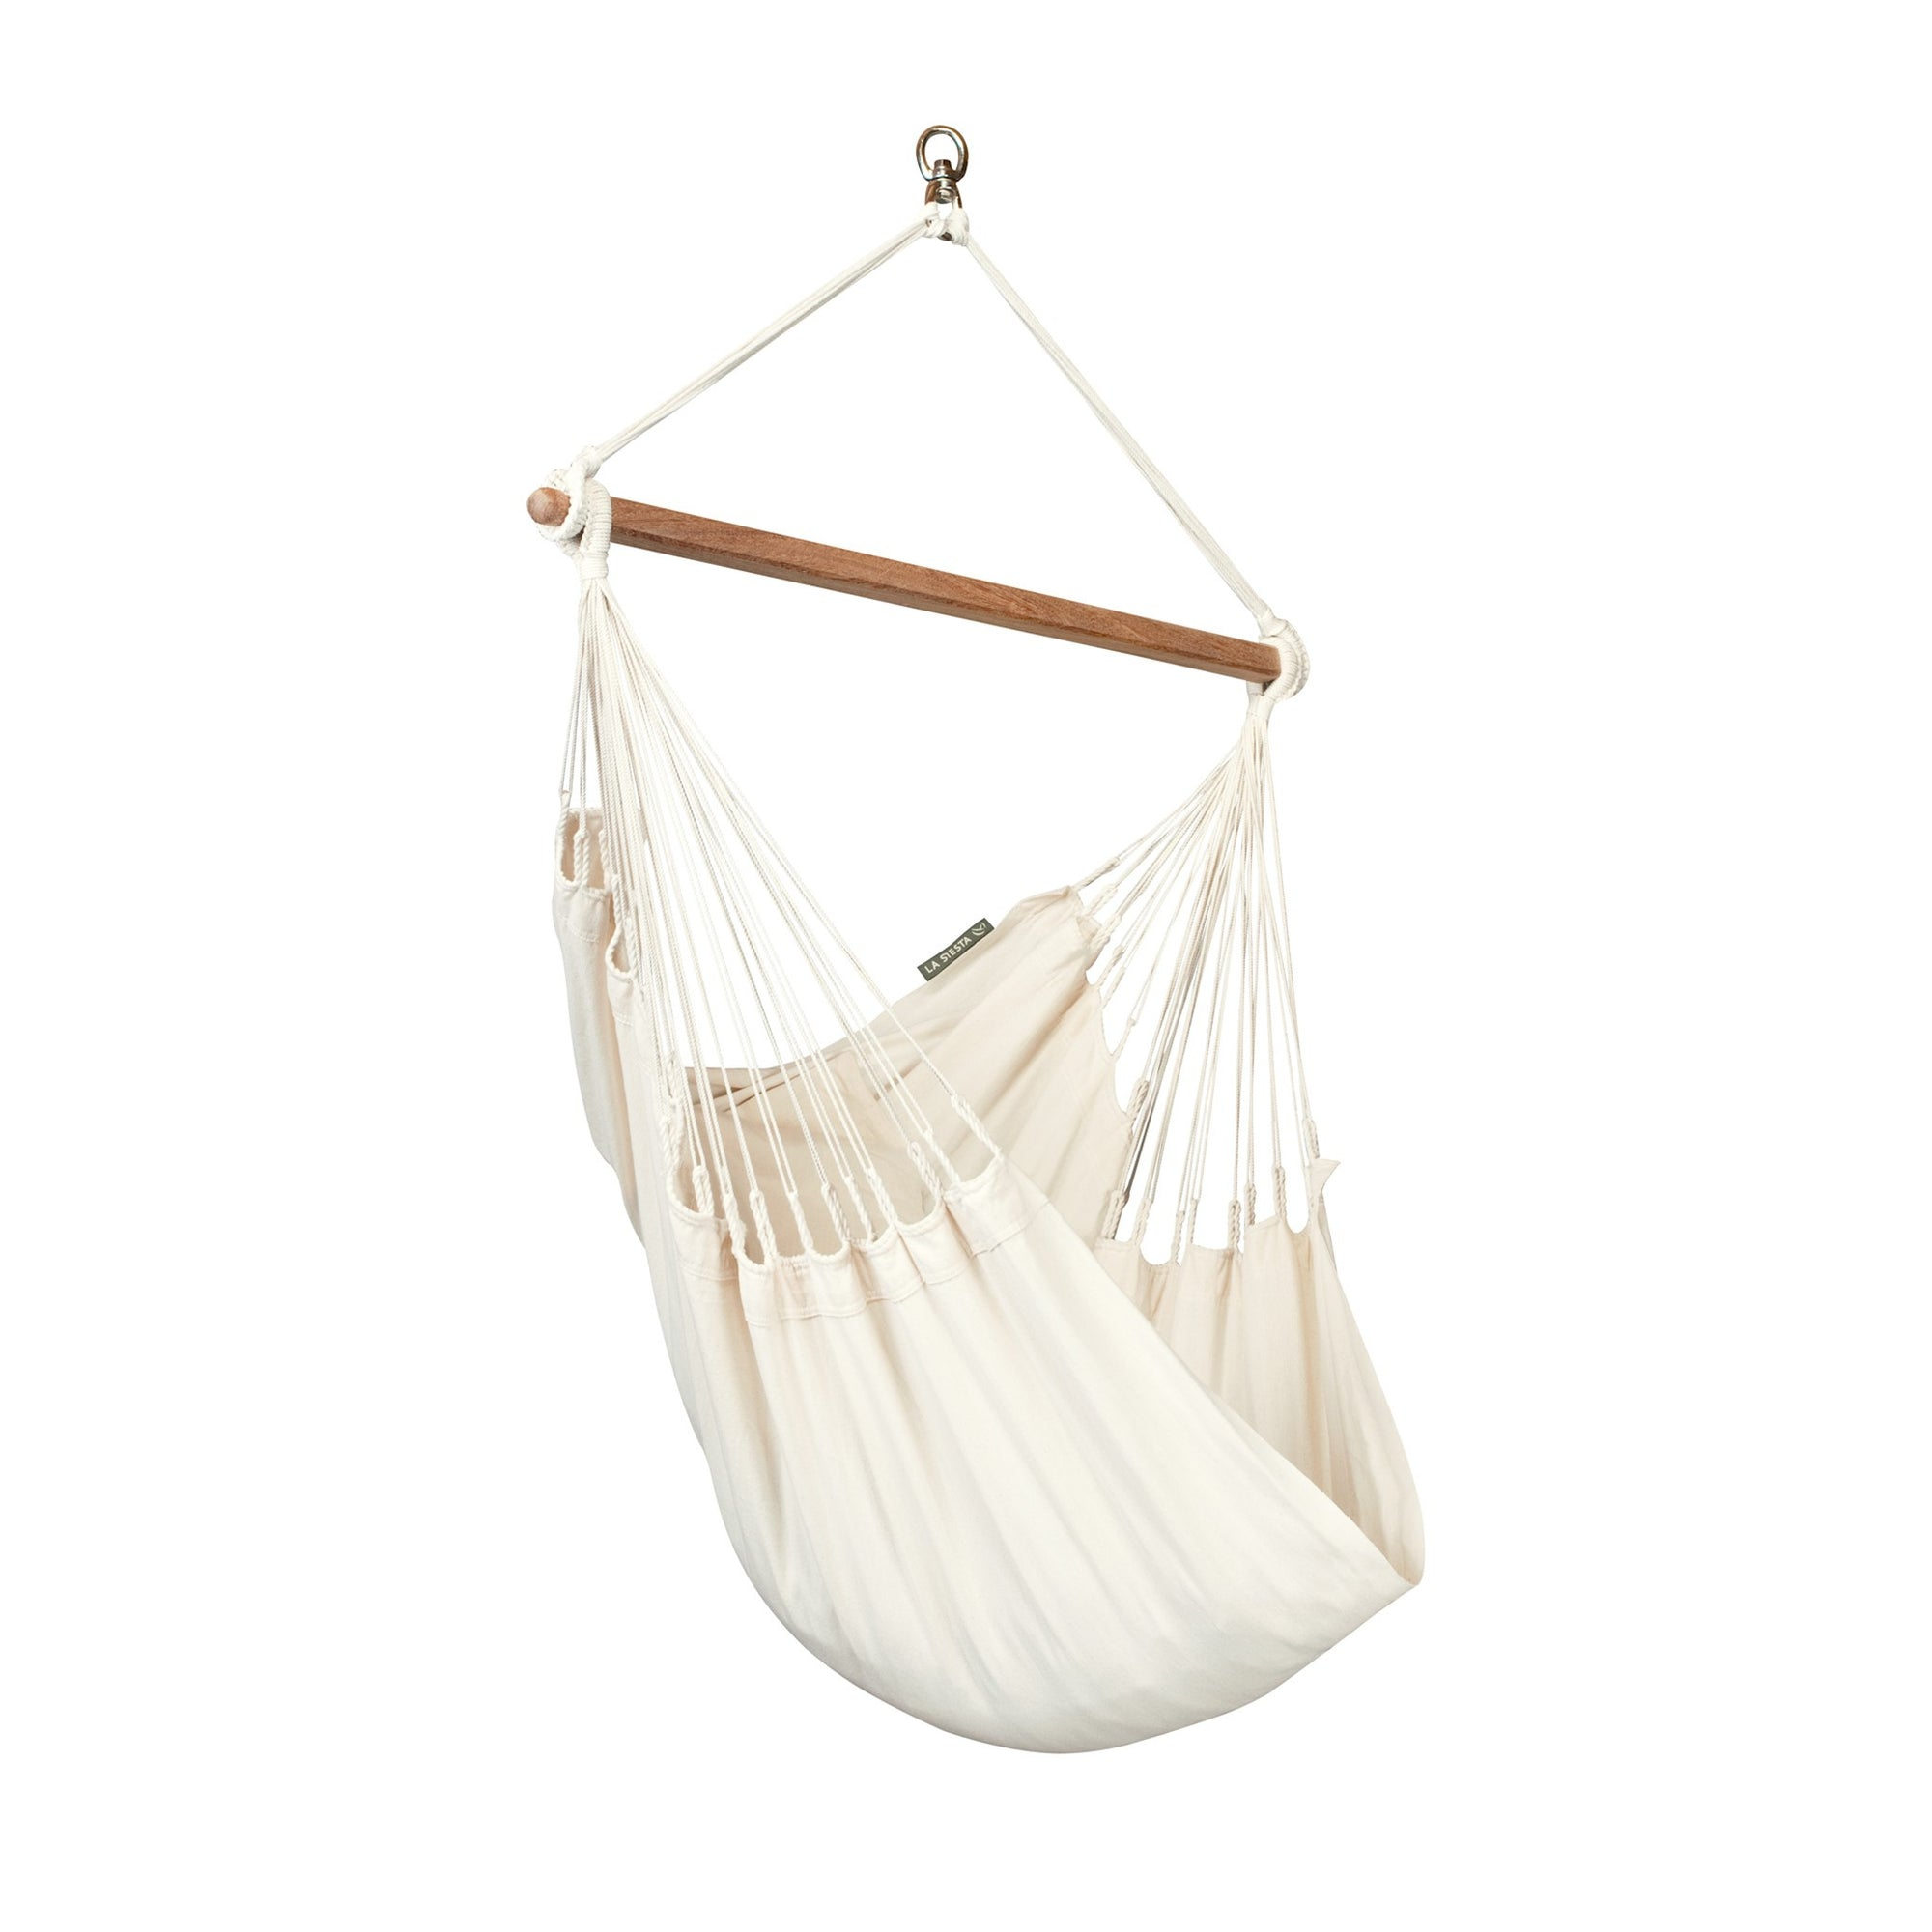 Modesta Basic Hammock Chair